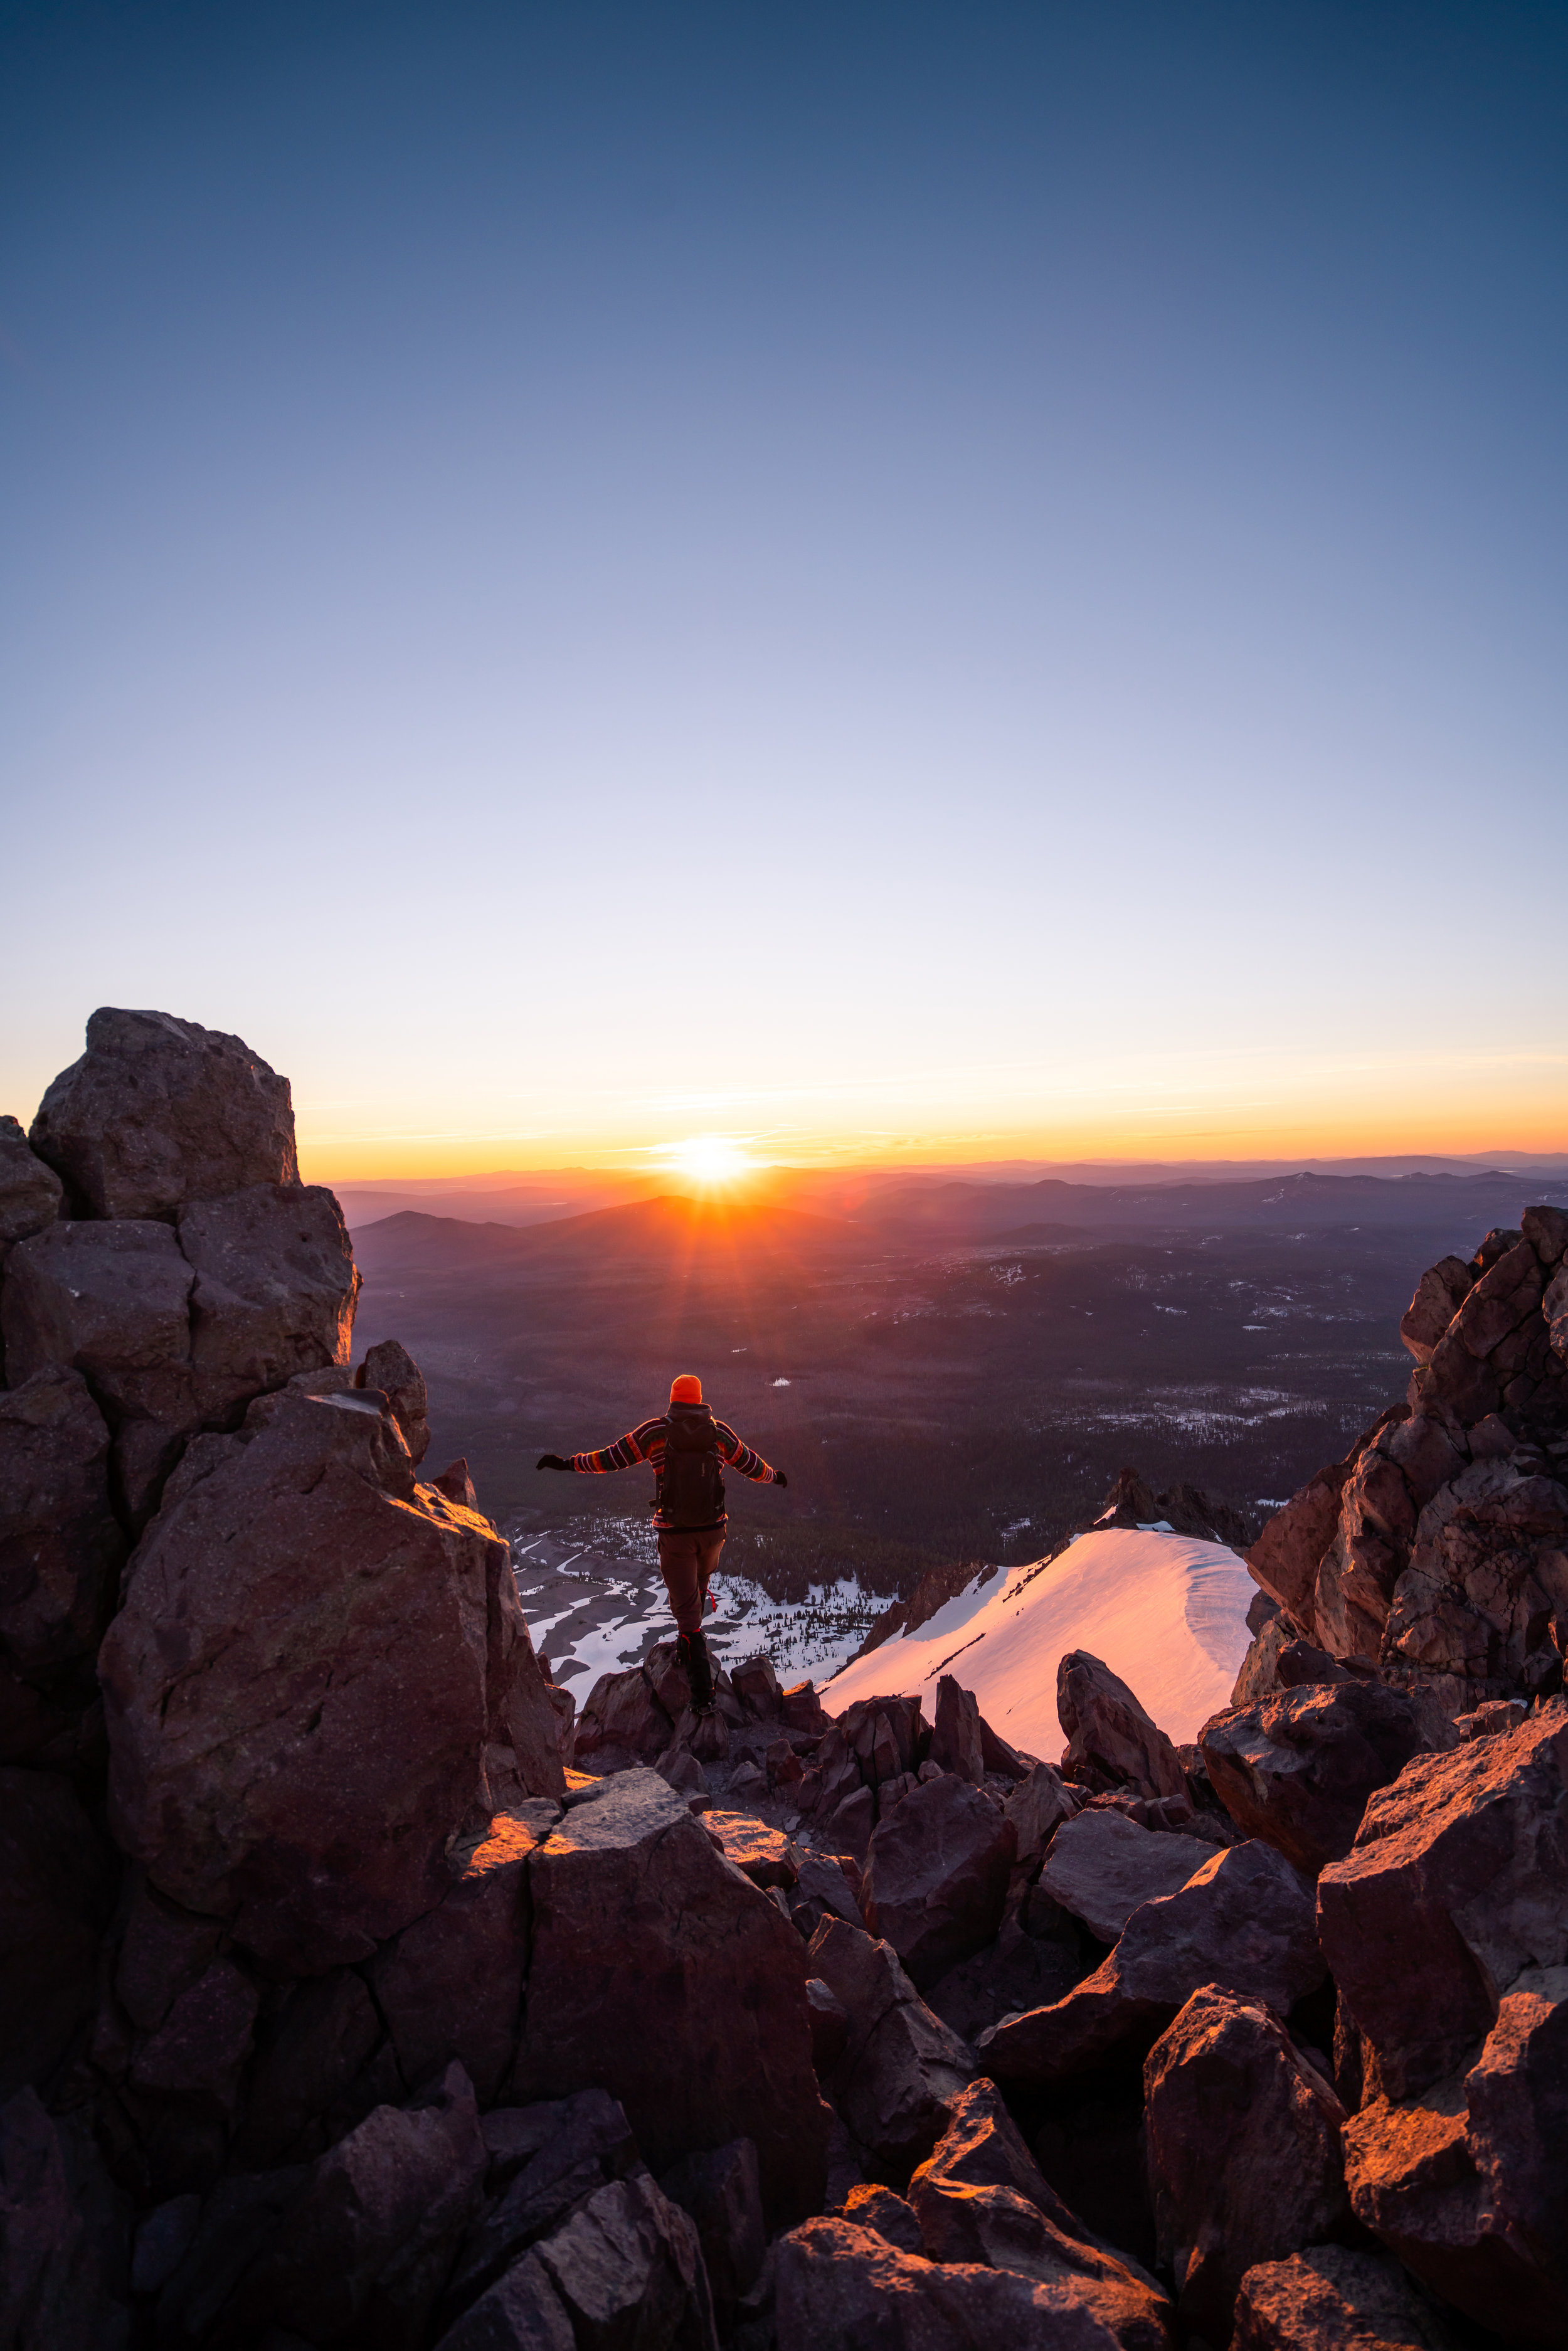 Mount Lassen summit at sunrise